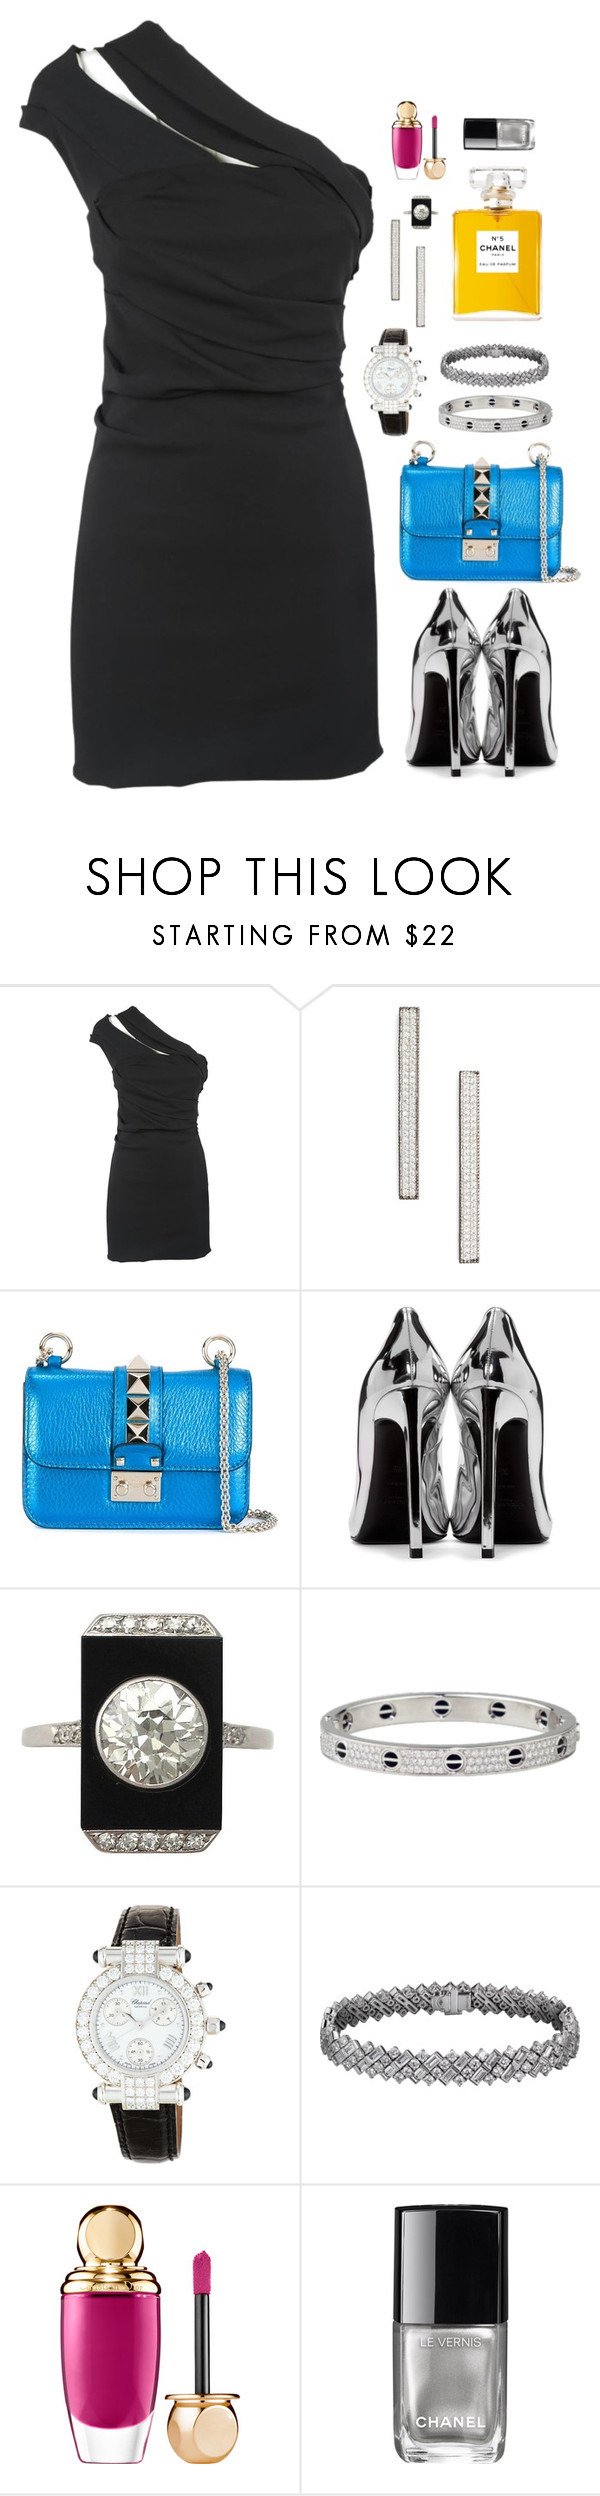 """""""sleek n Sheek"""" by sleeknsheek ❤ liked on Polyvore featuring Dsquared2, Freida Rothman, Valentino, Yves Saint Laurent, Cartier, Chopard, Sephora Collection and Chanel"""